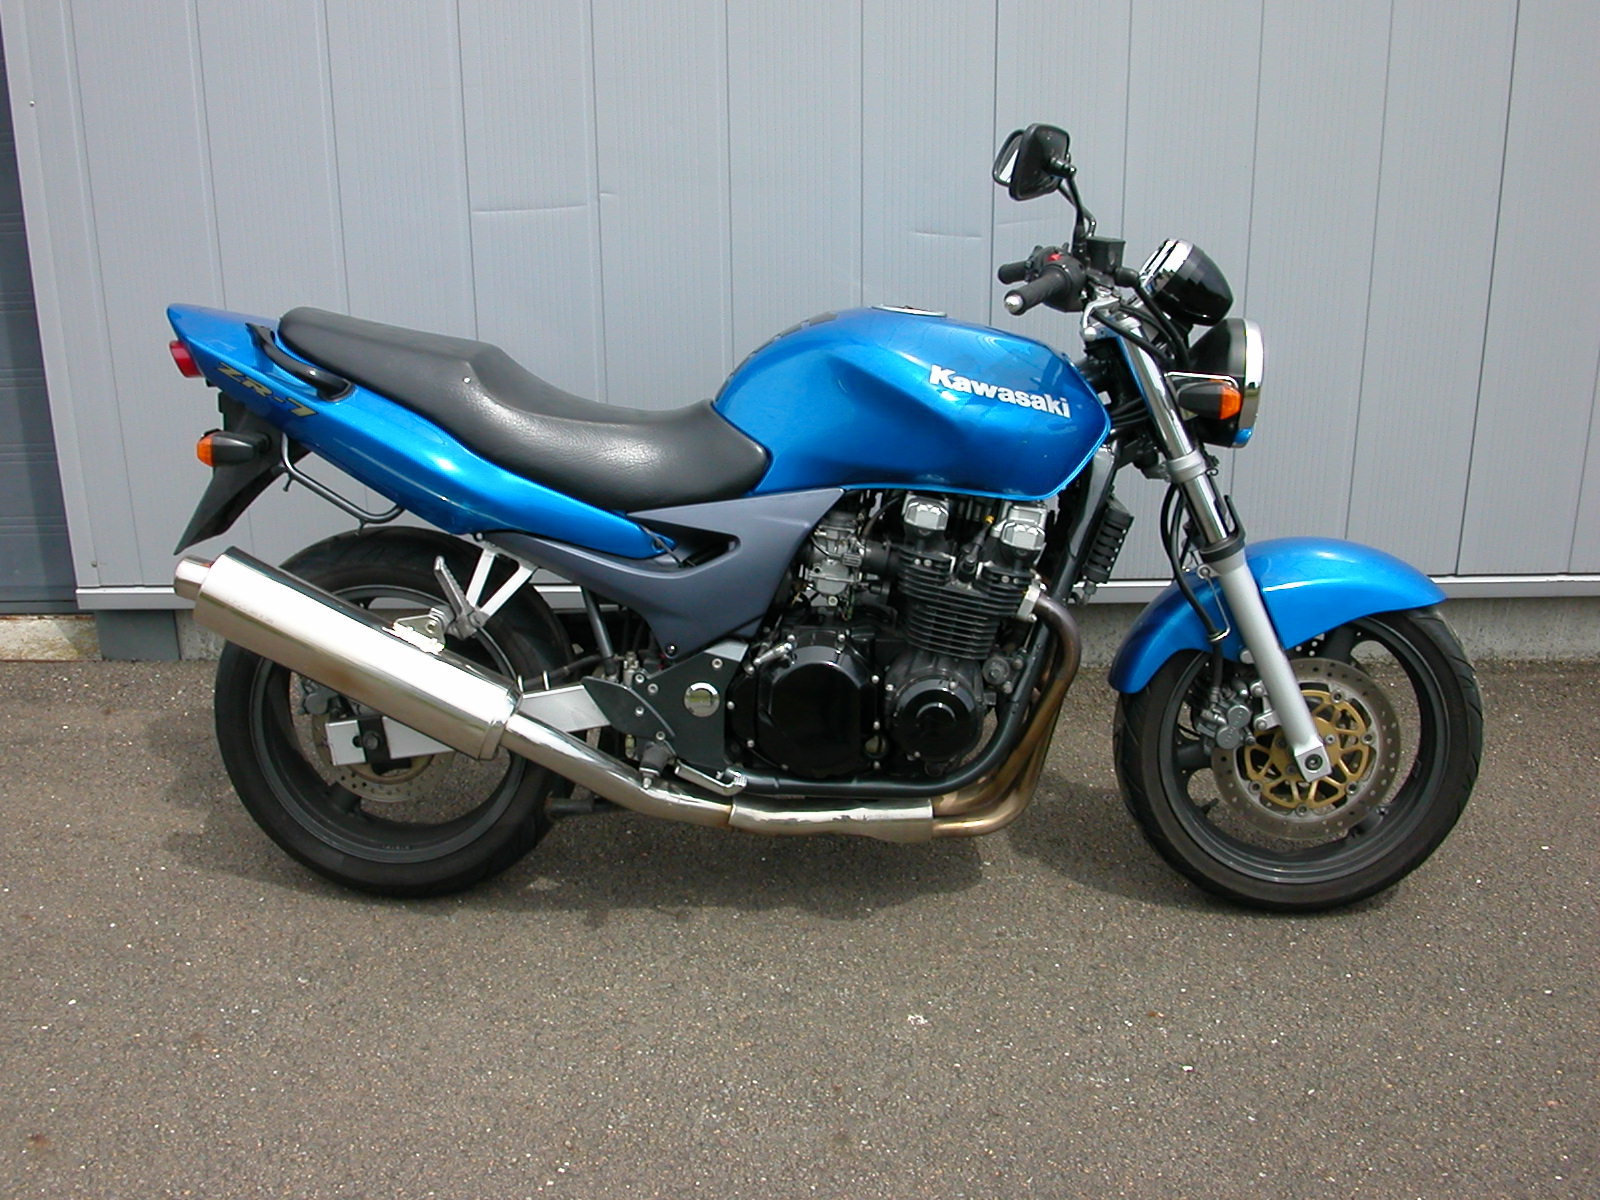 2002 kawasaki zr 7 pics specs and information. Black Bedroom Furniture Sets. Home Design Ideas